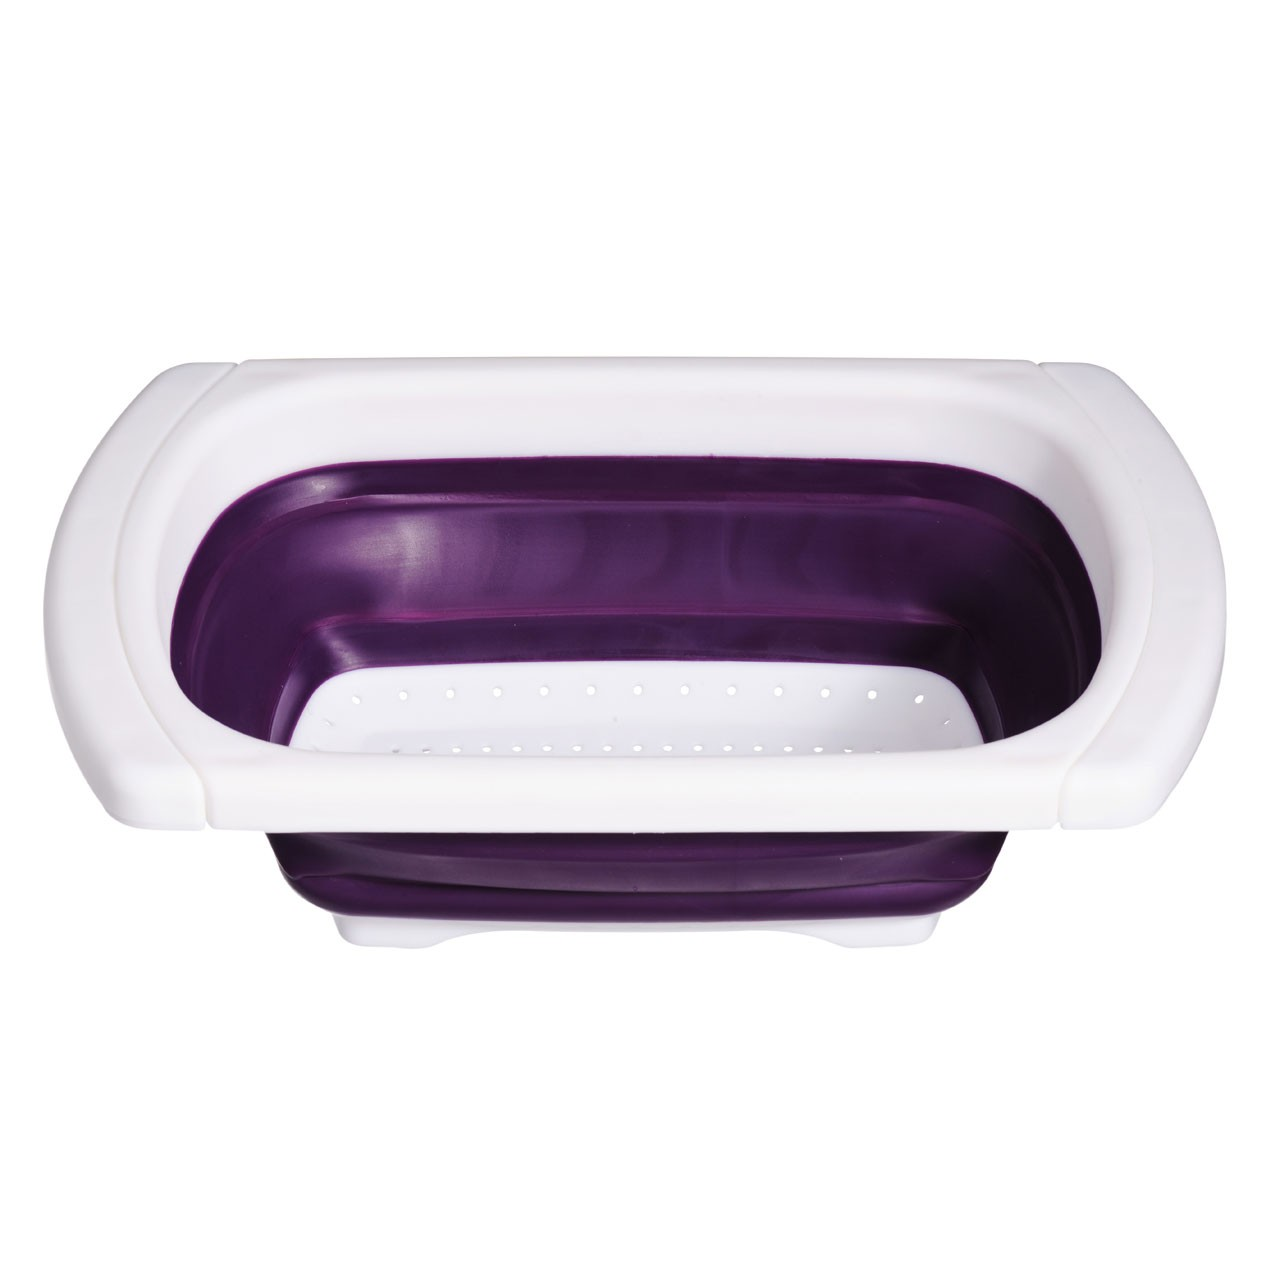 Zing Over Sink Drainer - Purple/White